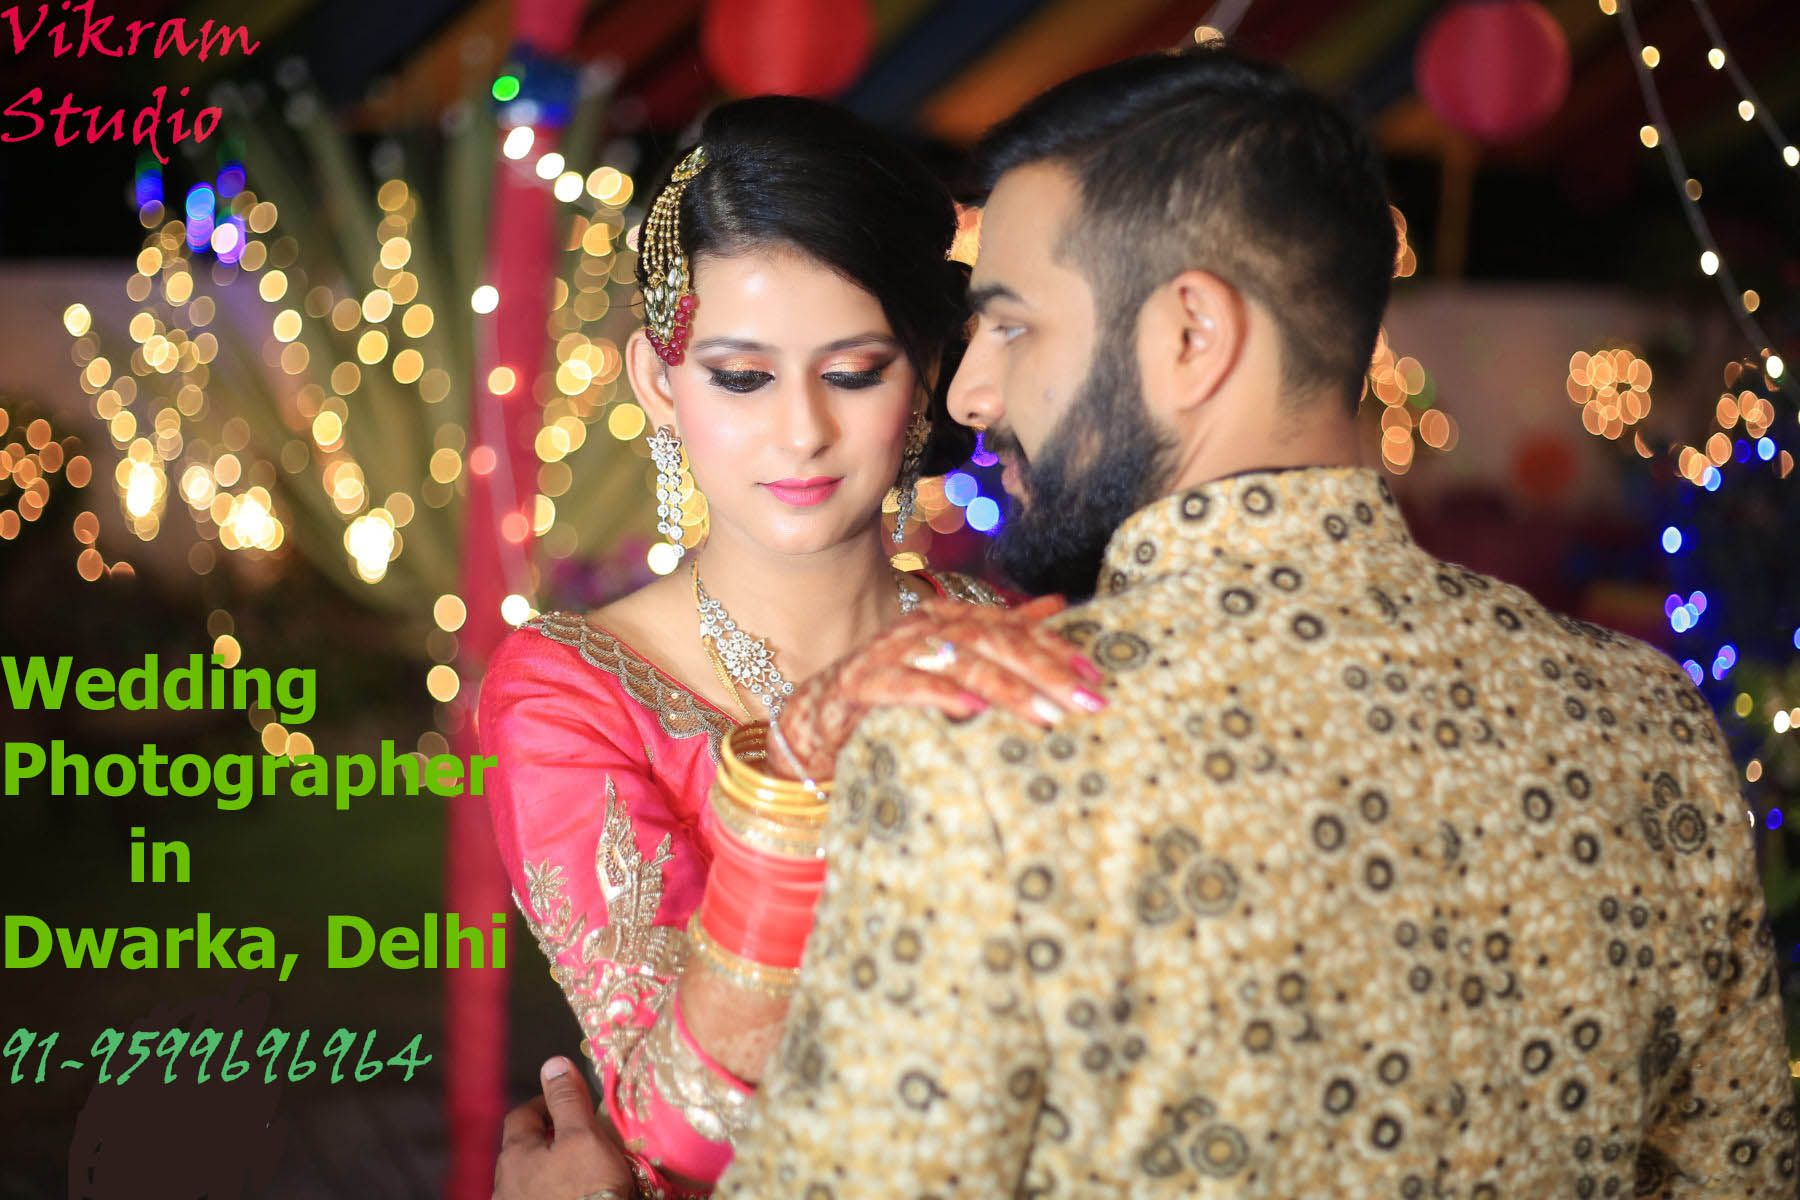 Vikram Studio Is a sterling wedding photographer in